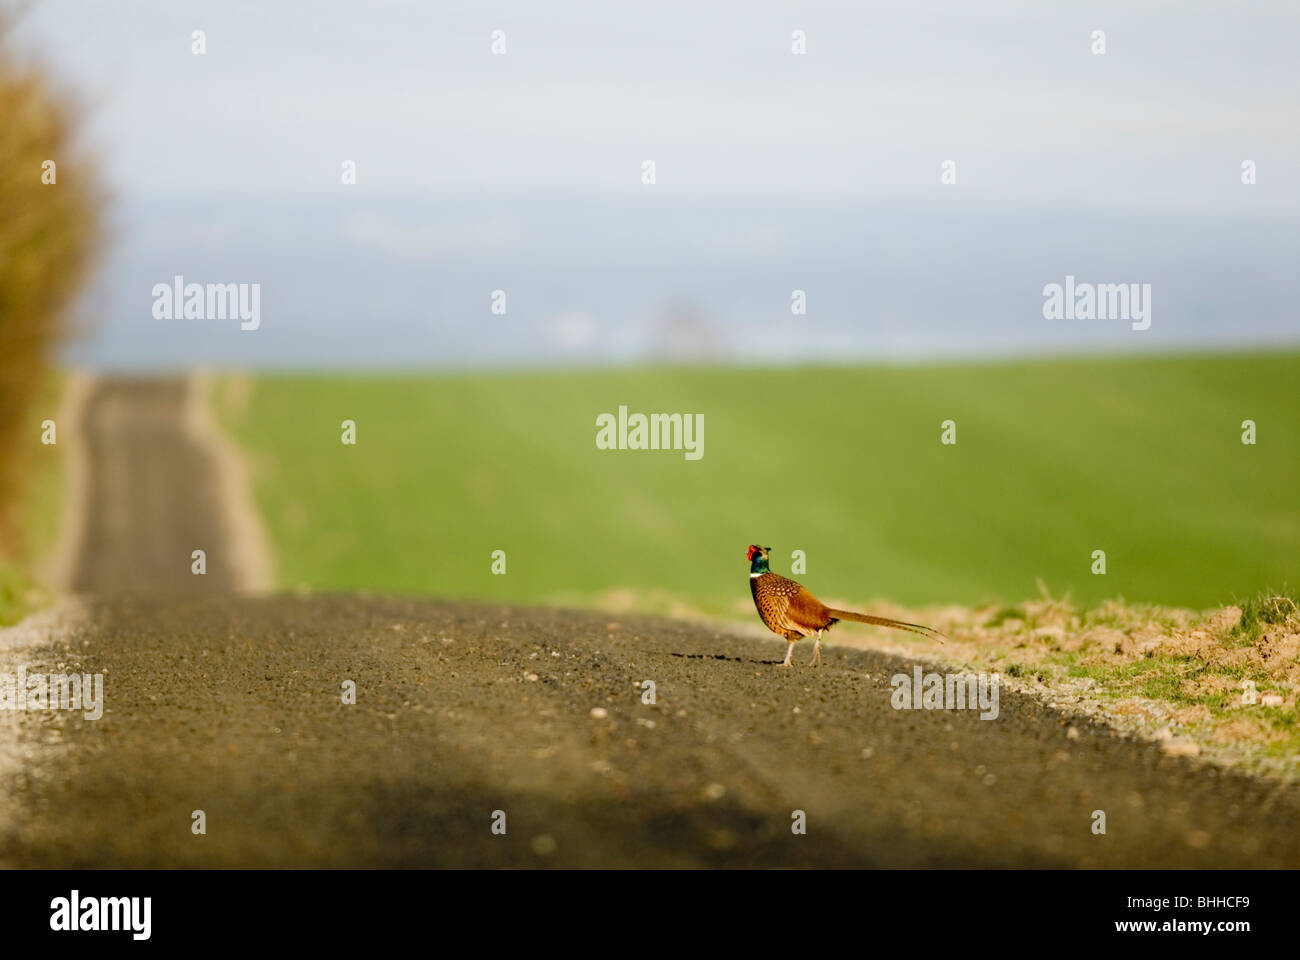 Pheasant on a graveled road, Sweden. - Stock Image